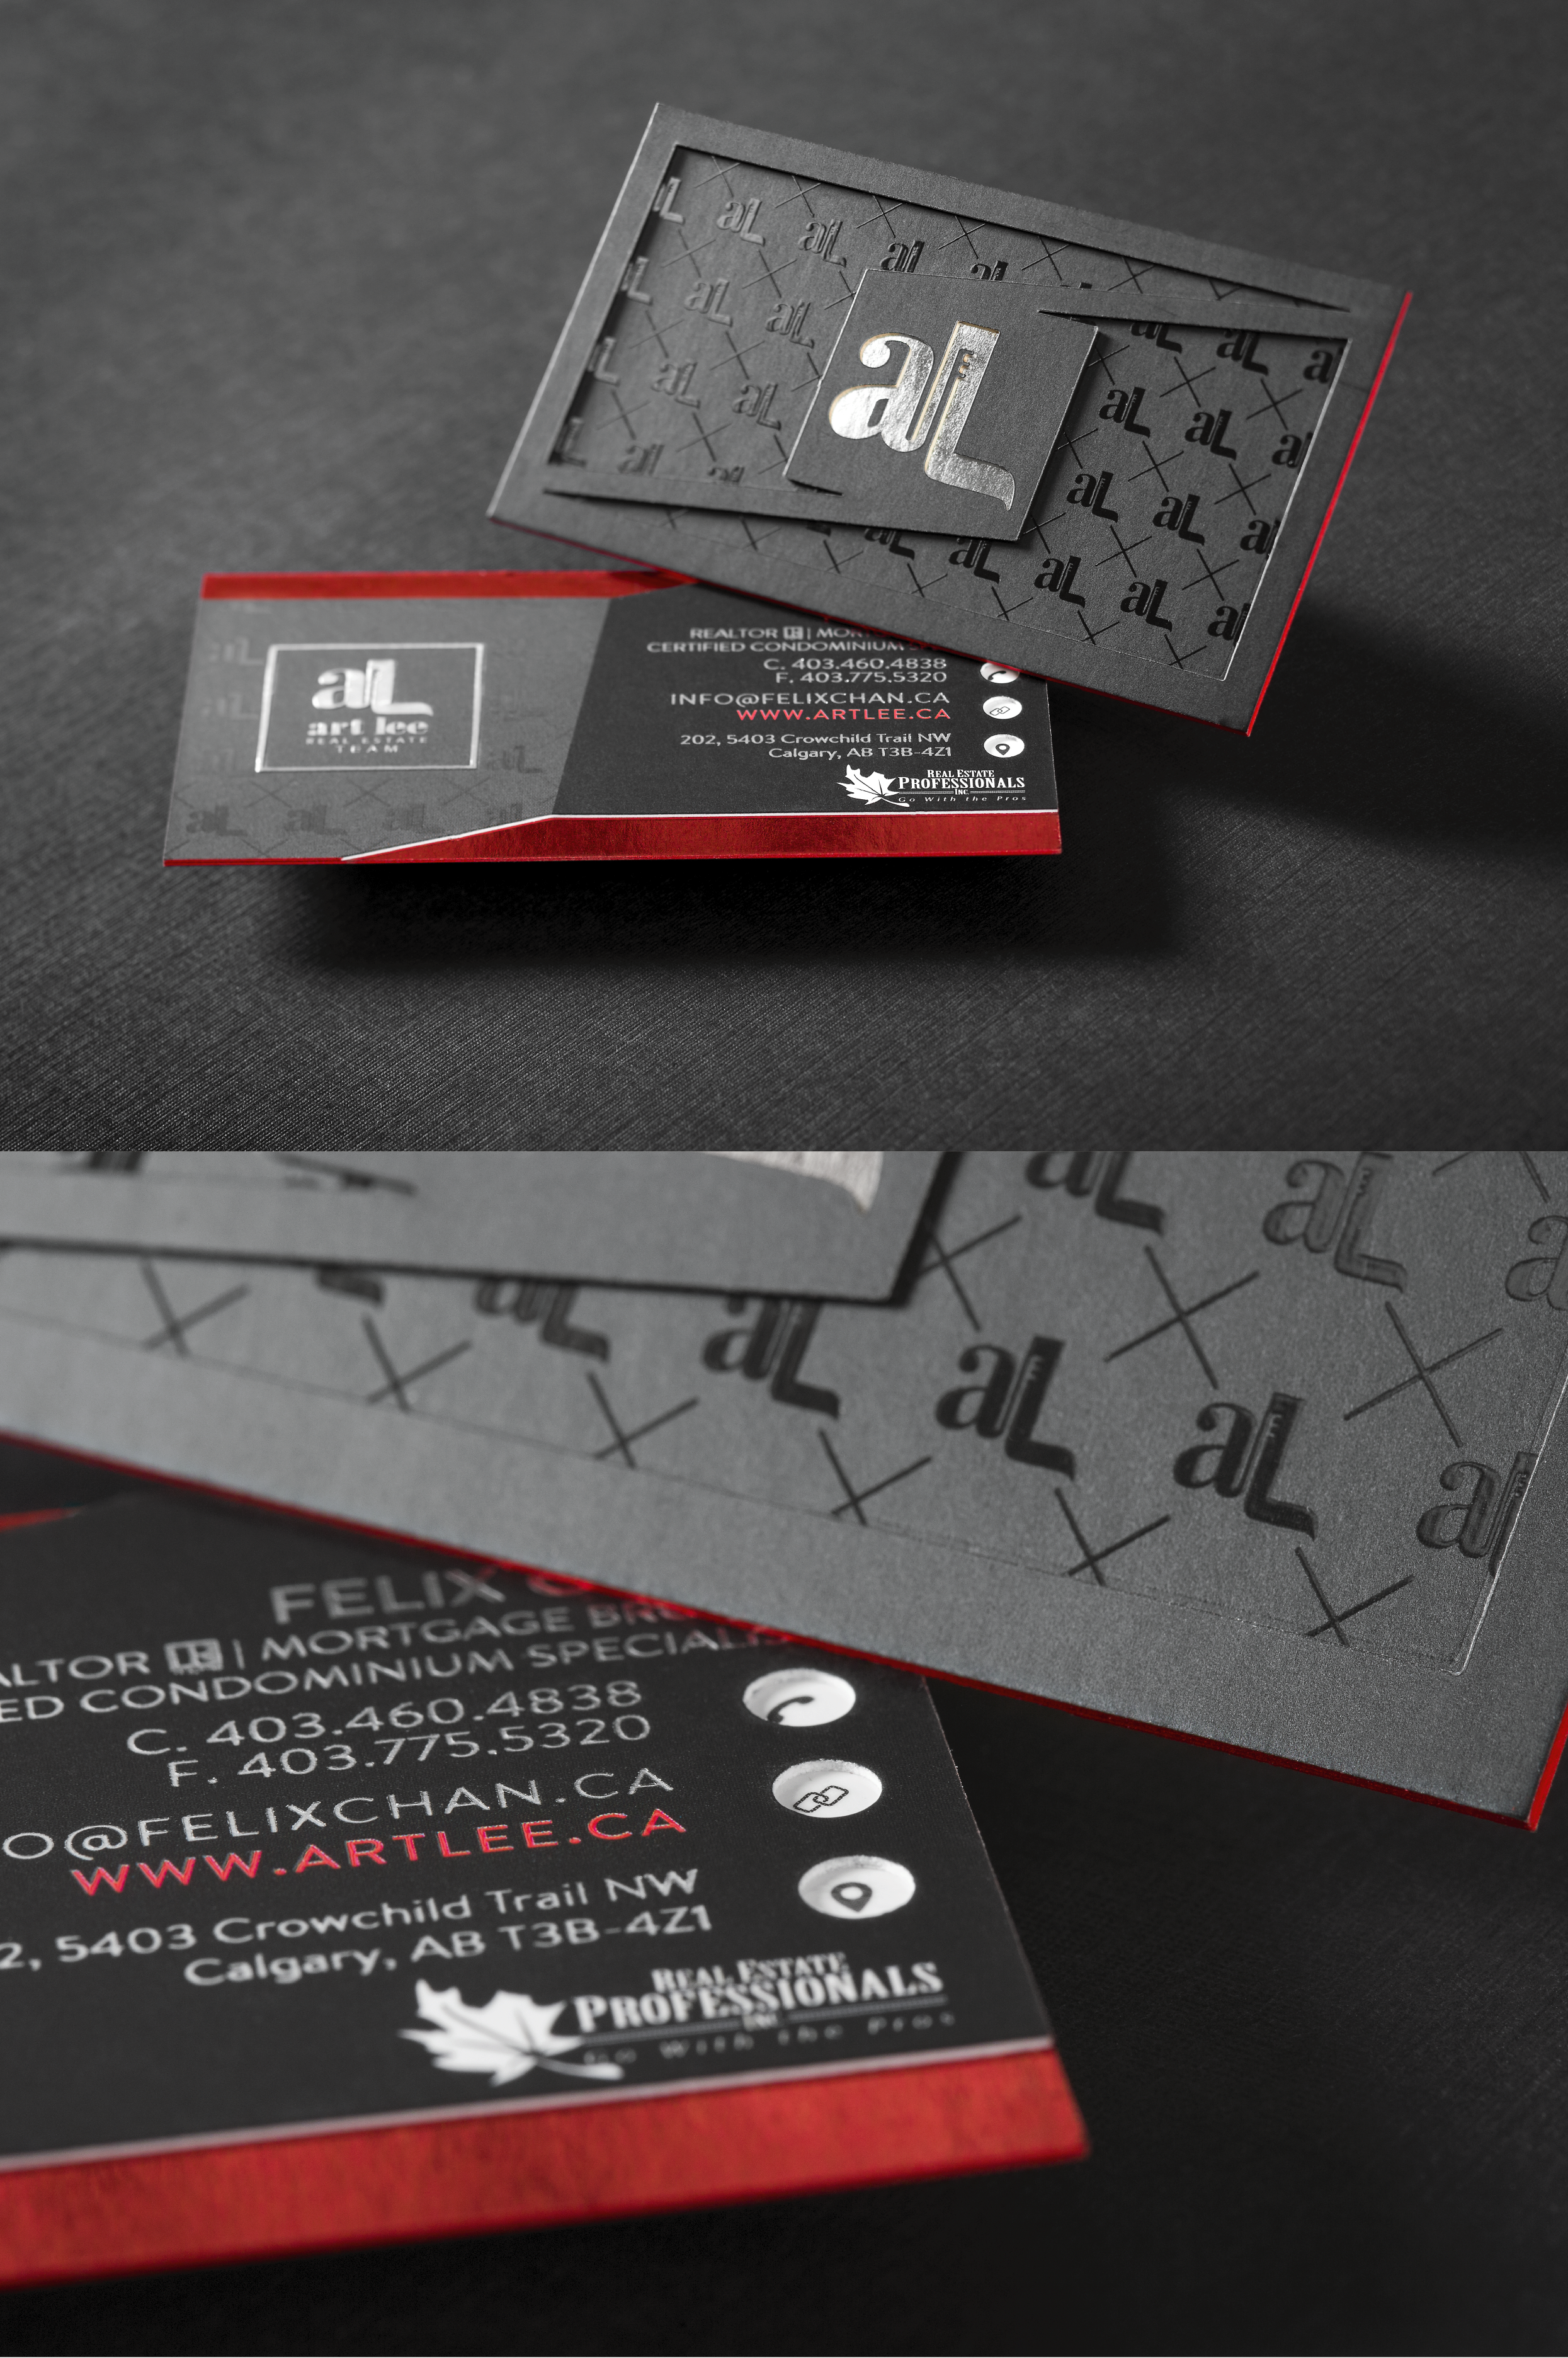 Art Lee Professional Business Card Thick Business Cards Business Card Design Business Card Gallery